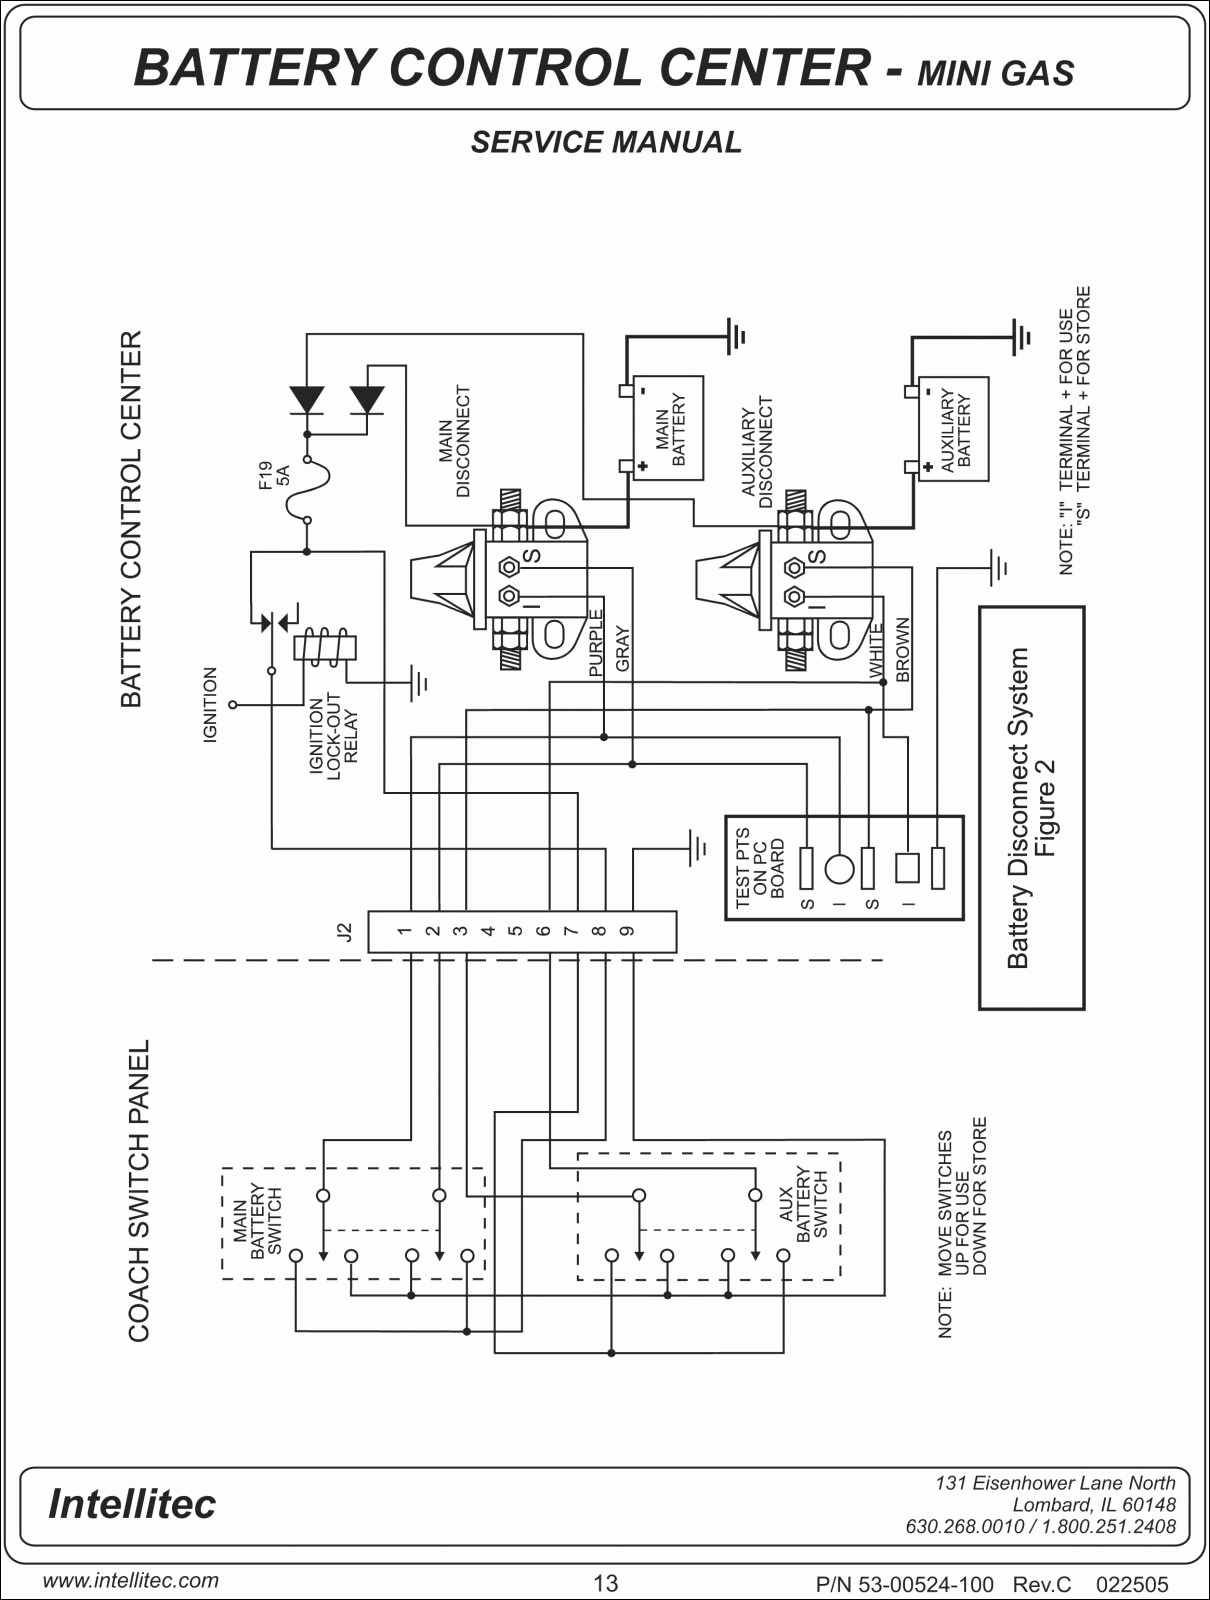 ac disconnect wiring diagram free download schematic main disconnect wiring diagram free download